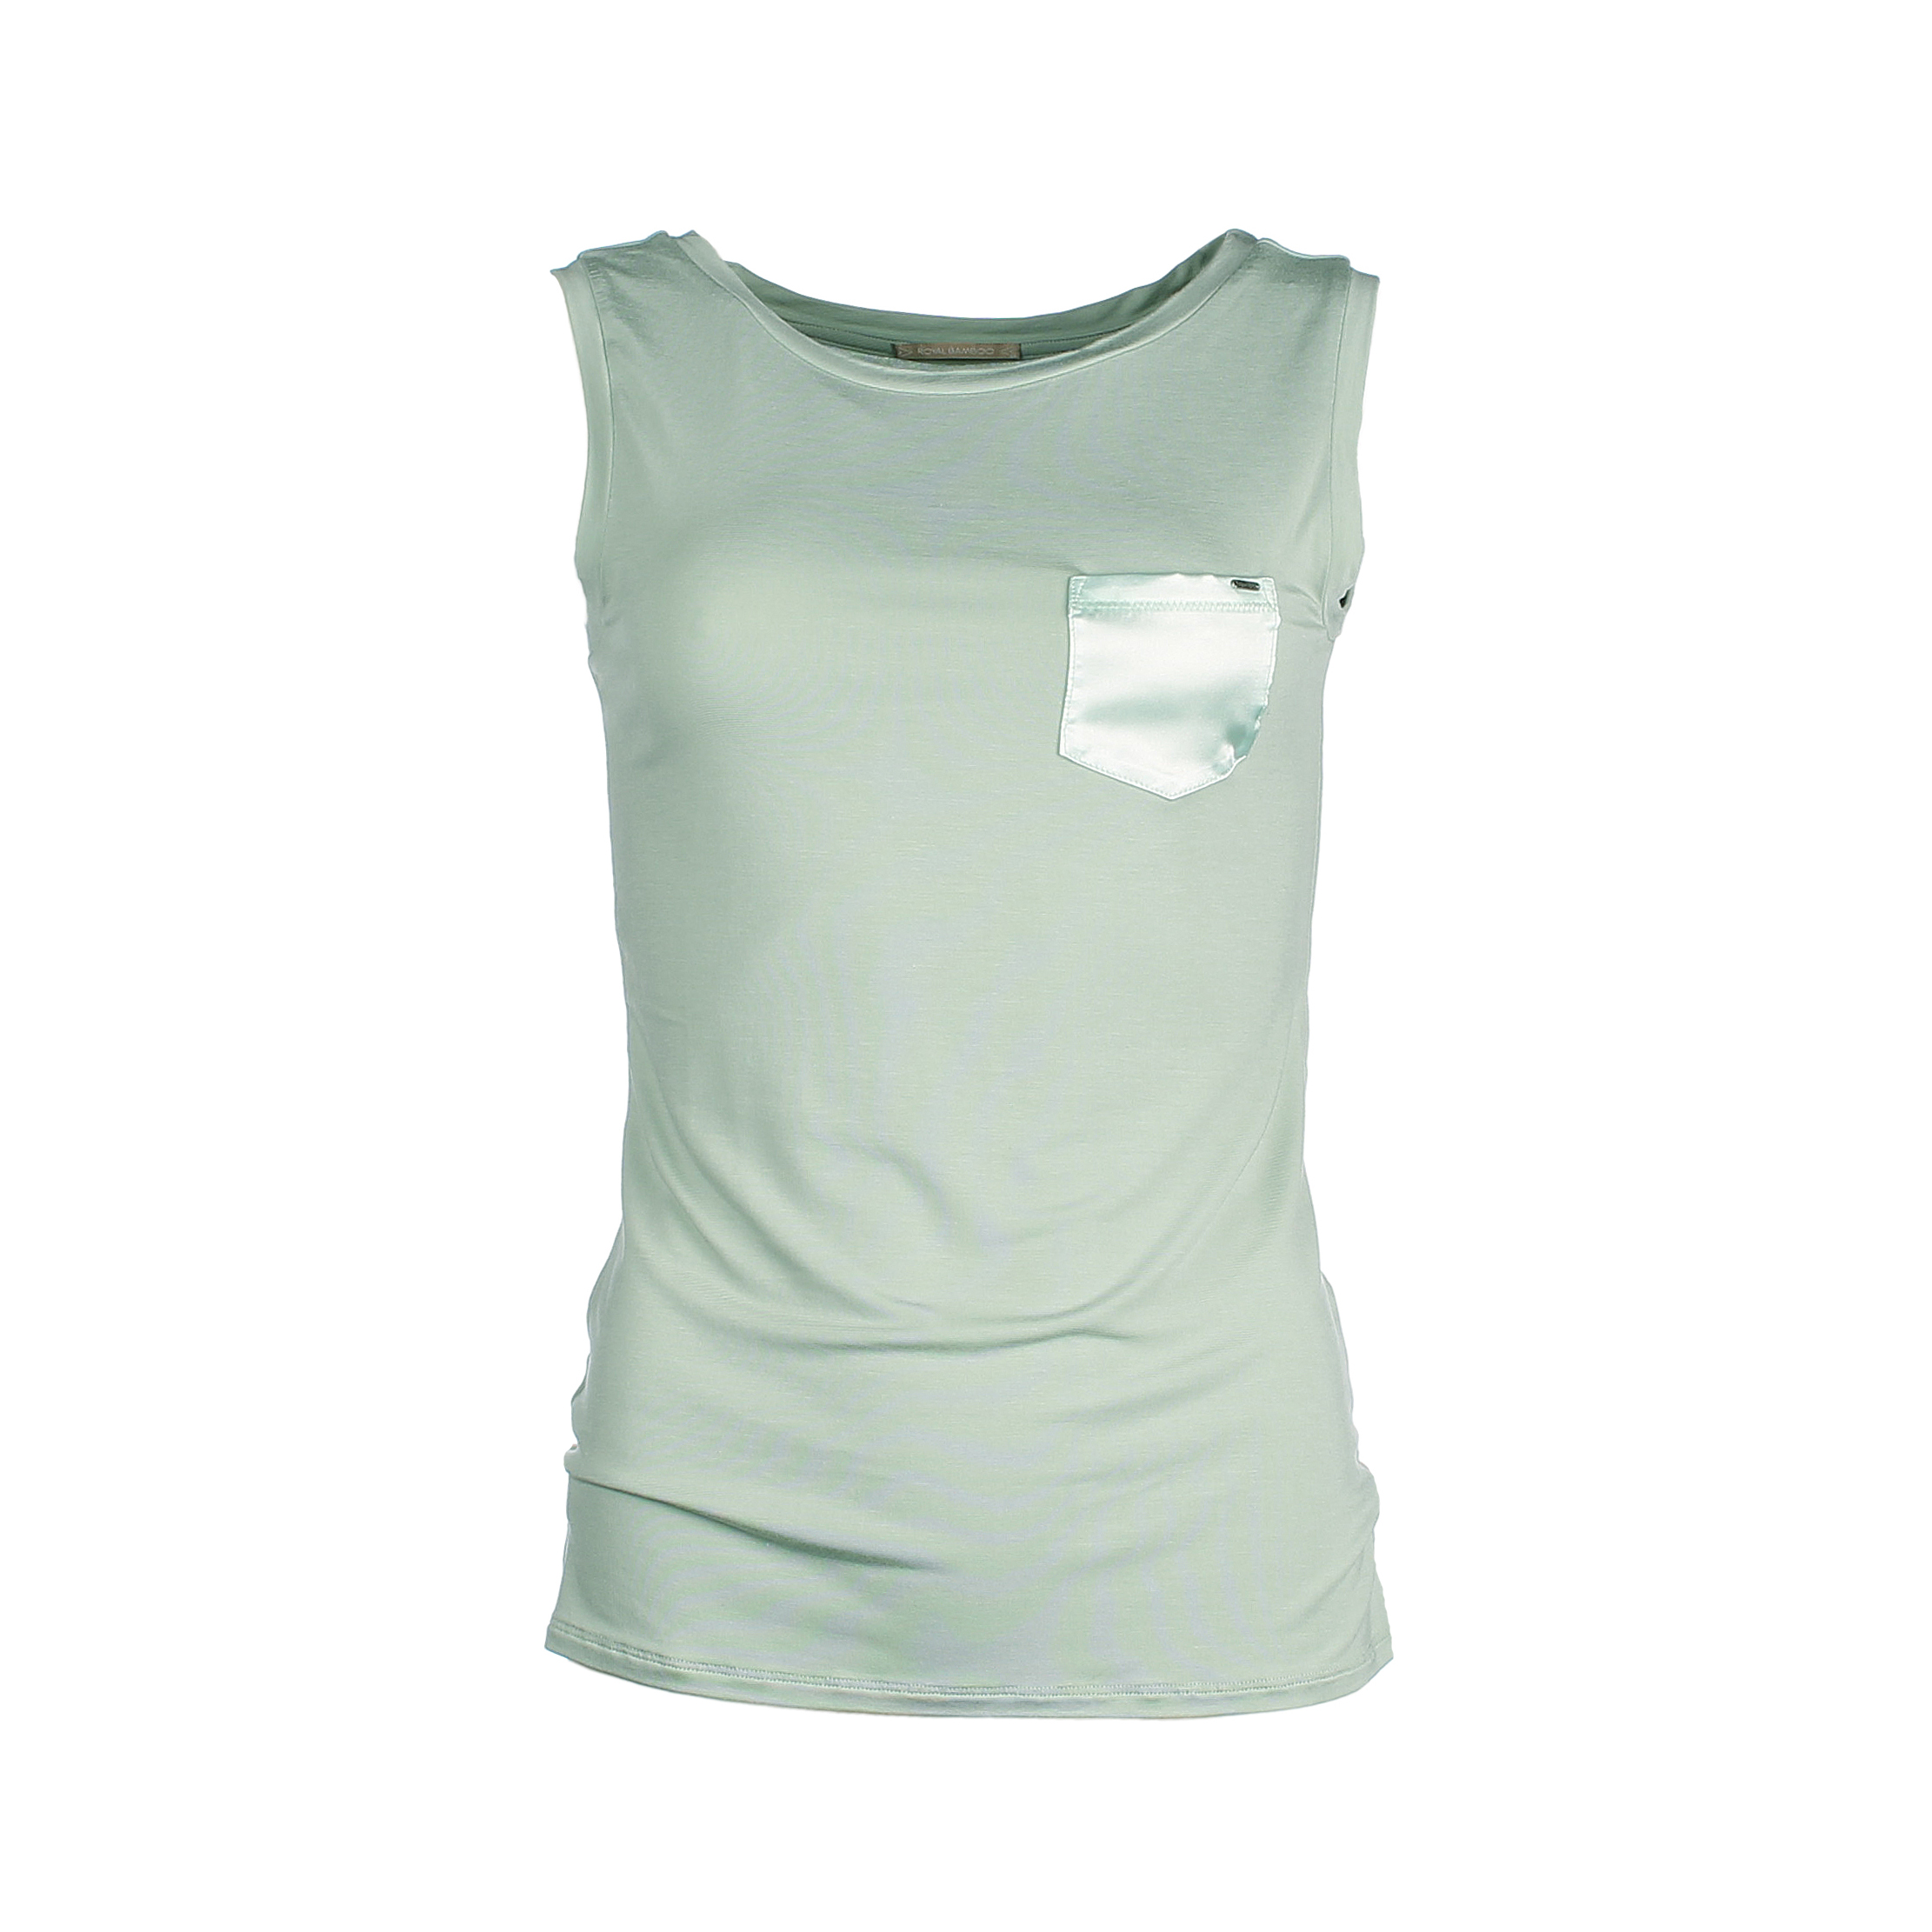 Sleeveless top bamboo - jade green - Mouwloze top - jade groen